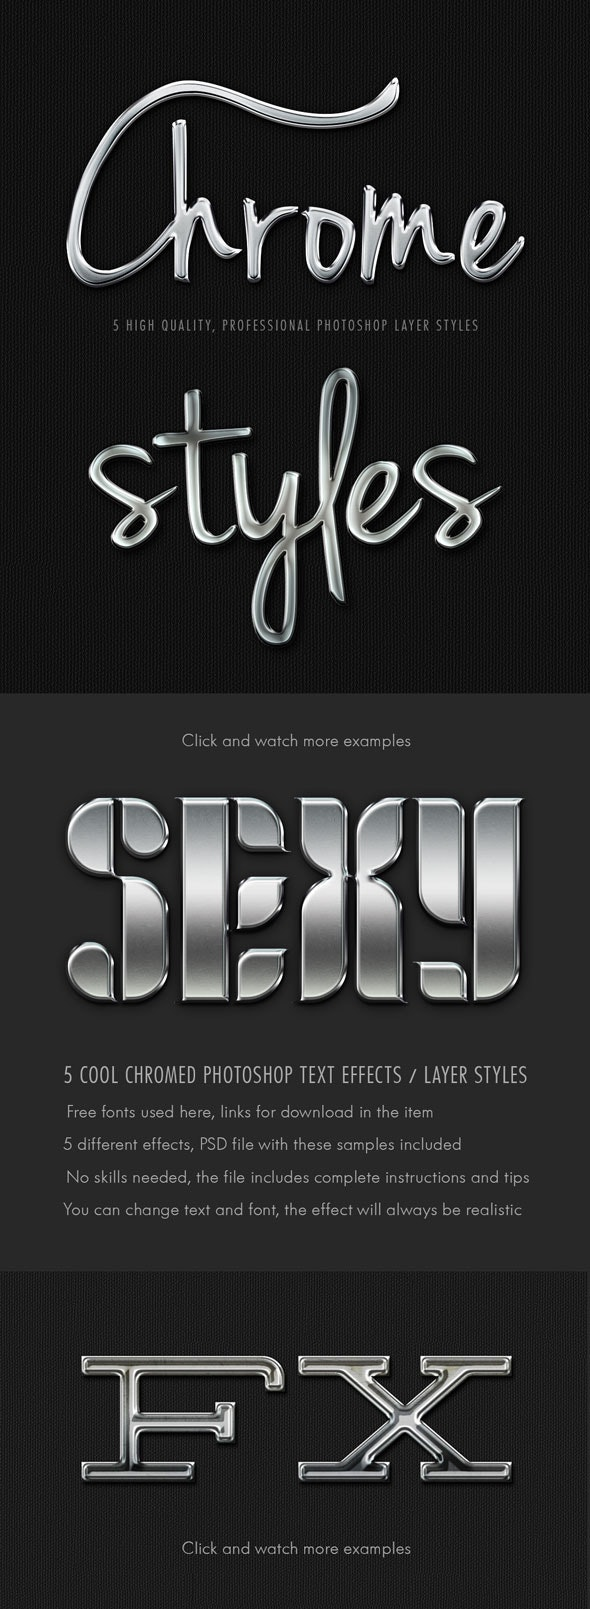 5 Realistic Pro Chrome Layer Styles - Text Effects Styles